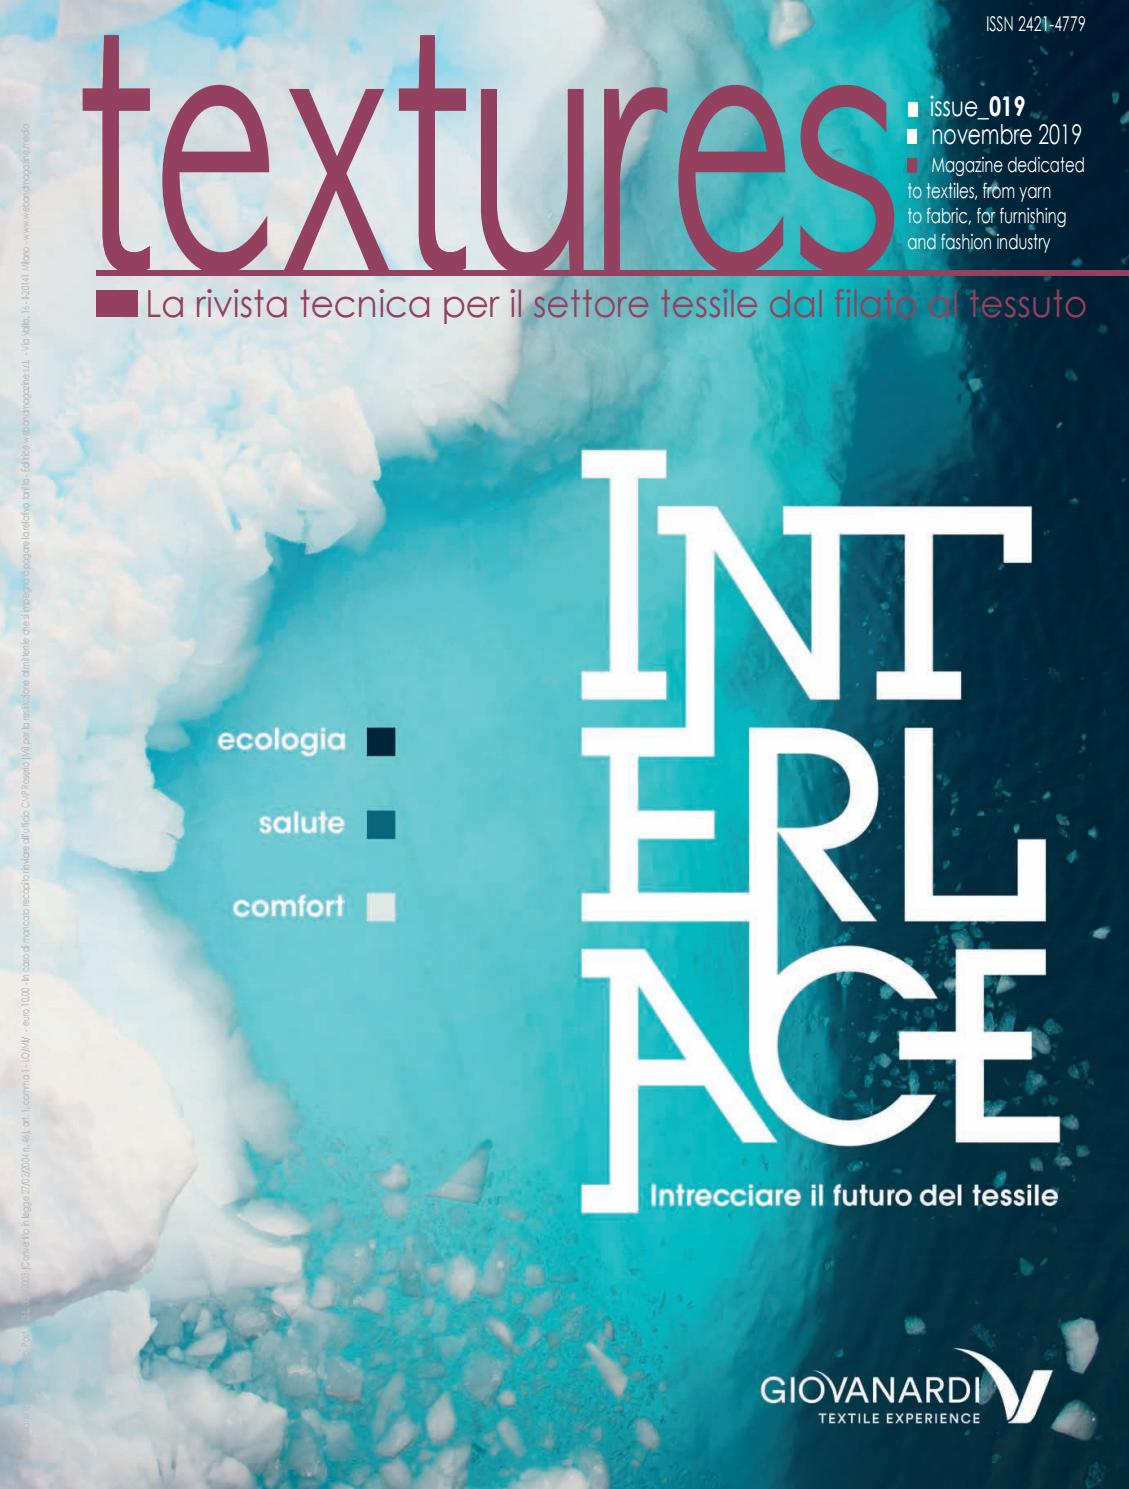 TEXTURES_issue_019 by Web and Magazine s.r.l. issuu